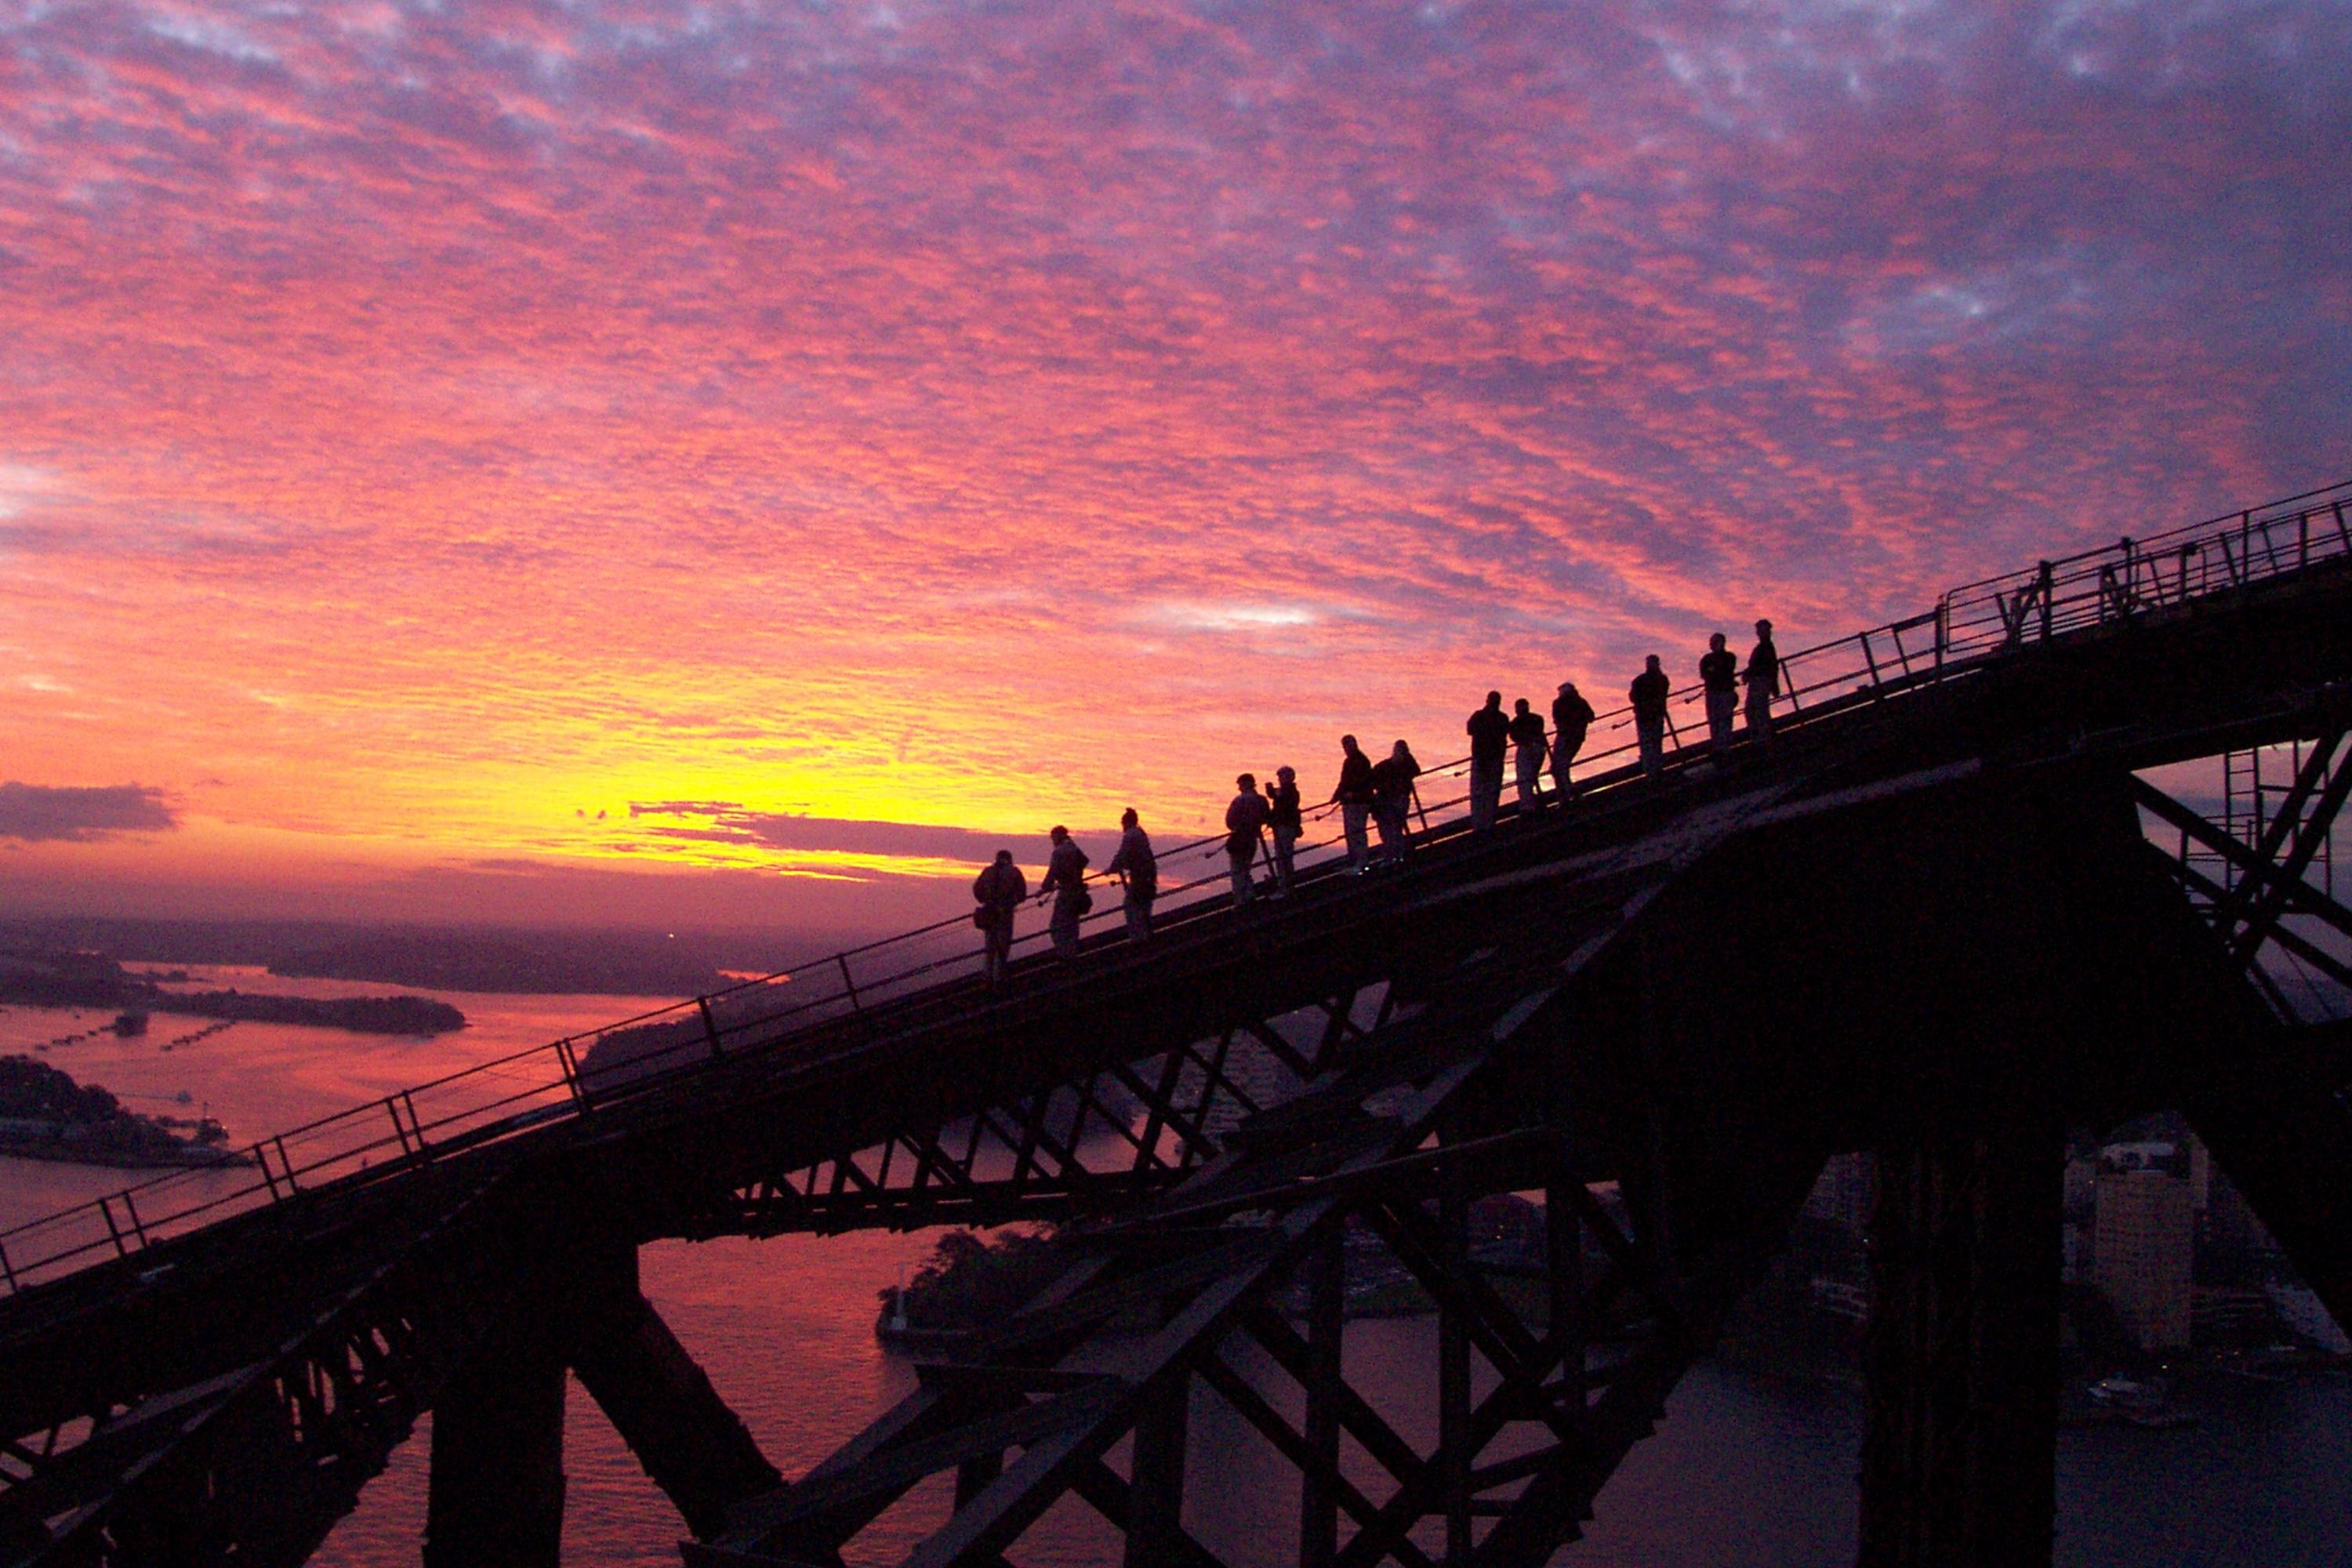 Twilight BridgeClimb up Sydney Harbour Bridge